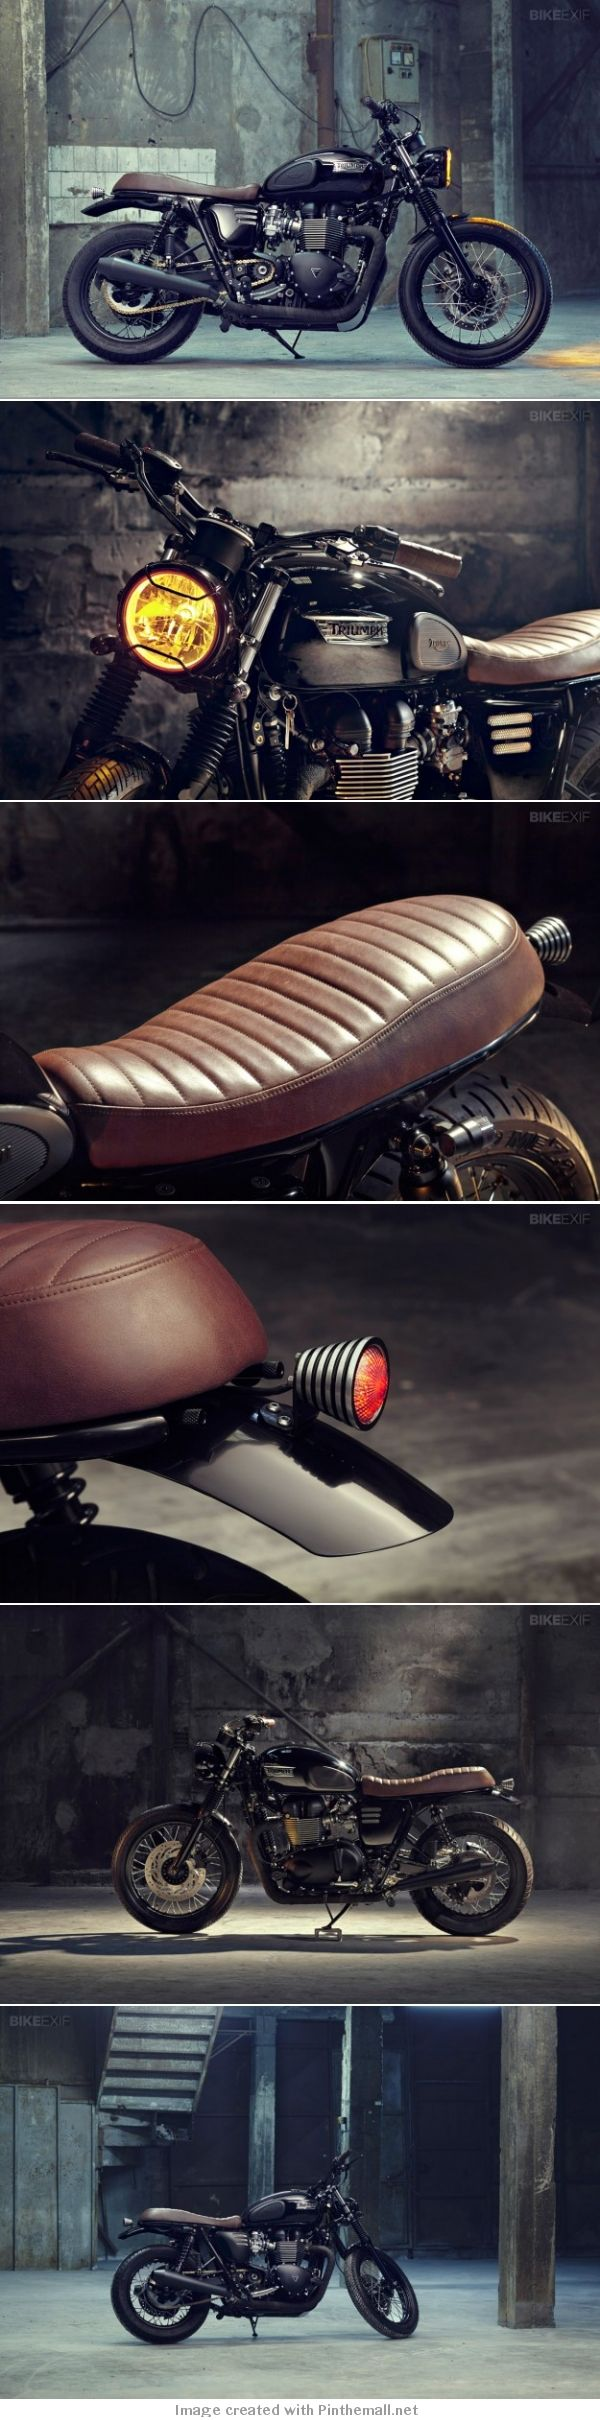 TRIUMPH BONNEVILLE T100 BY BUNKER - created via http://pinthemall.net